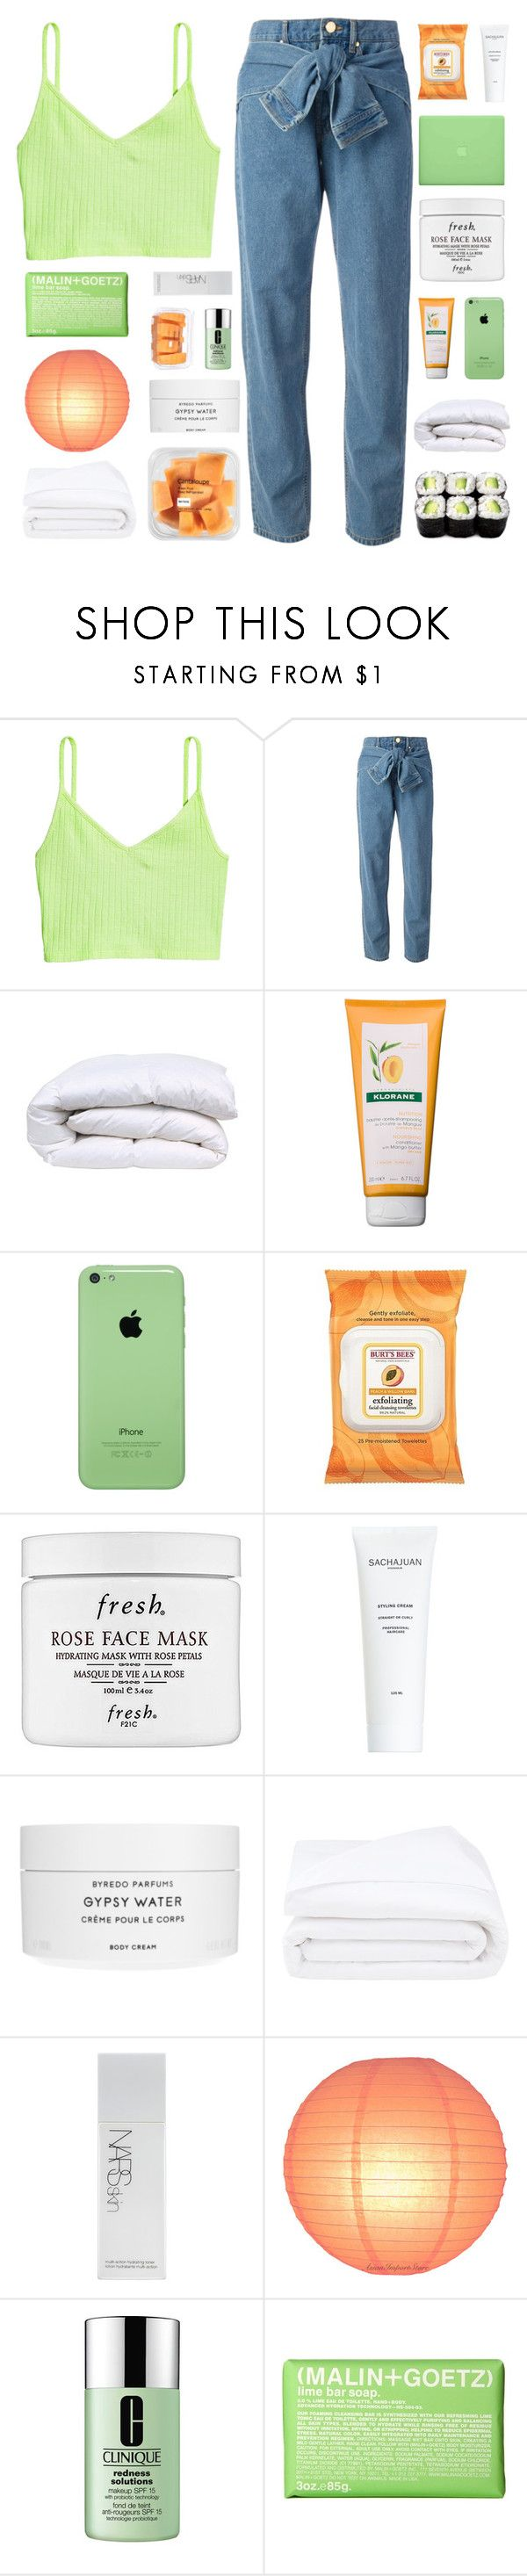 """""""A G N O S C O"""" by naturitve ❤ liked on Polyvore featuring DKNY, Klorane, MAC Cosmetics, Burt's Bees, Fresh, J.Crew, Byredo, Frette, NARS Cosmetics and Clinique"""